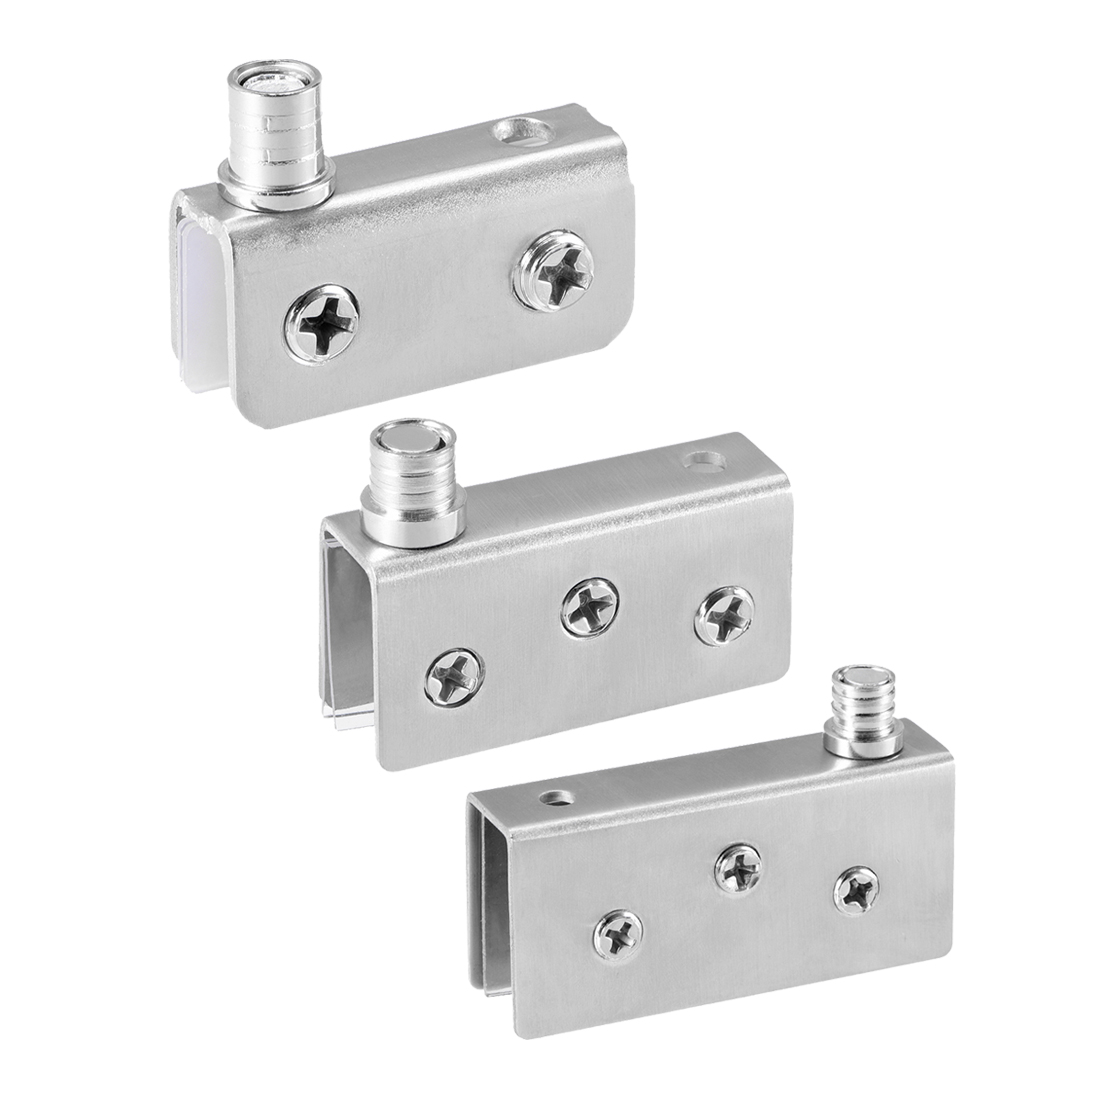 Uxcell Corrosion Resistance Glass Hinge Stainless Steel Glass Door Pivot Hinge Glass Clamp Silver Tone